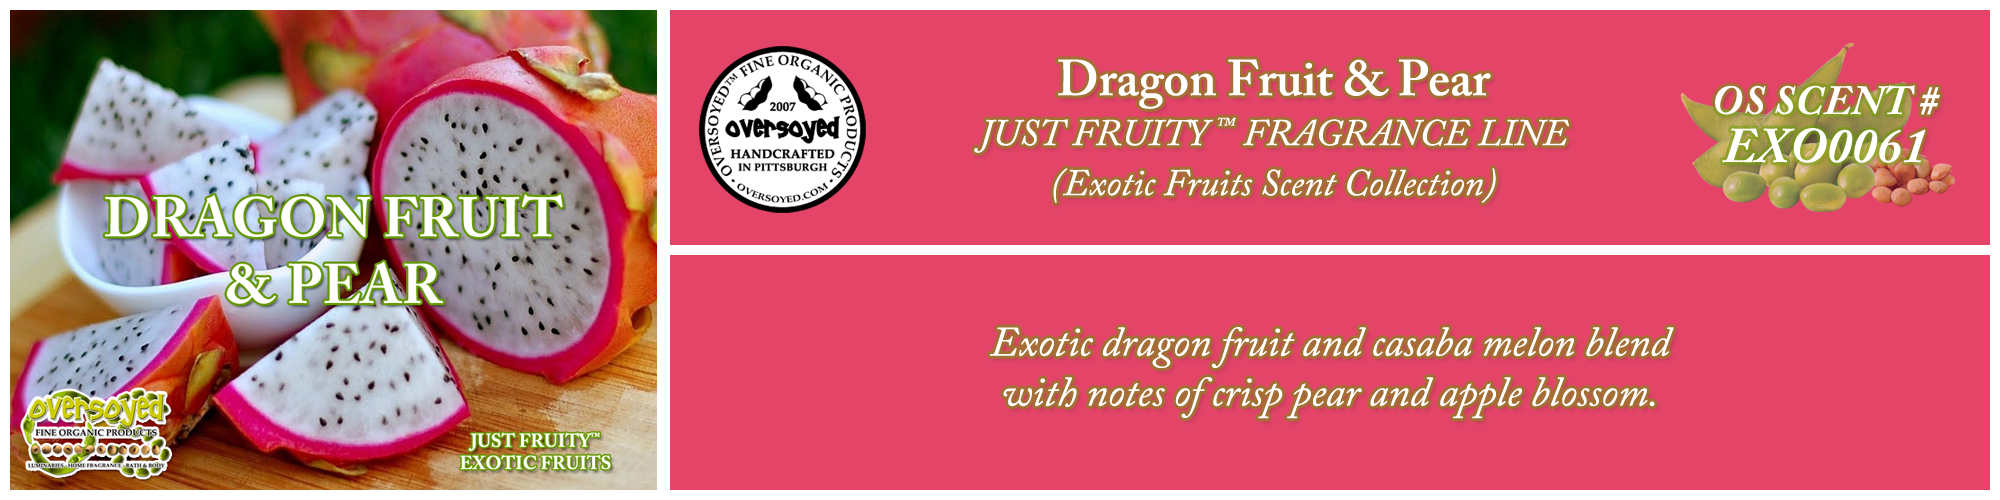 Dragon Fruit & Pear Handcrafted Products Collection